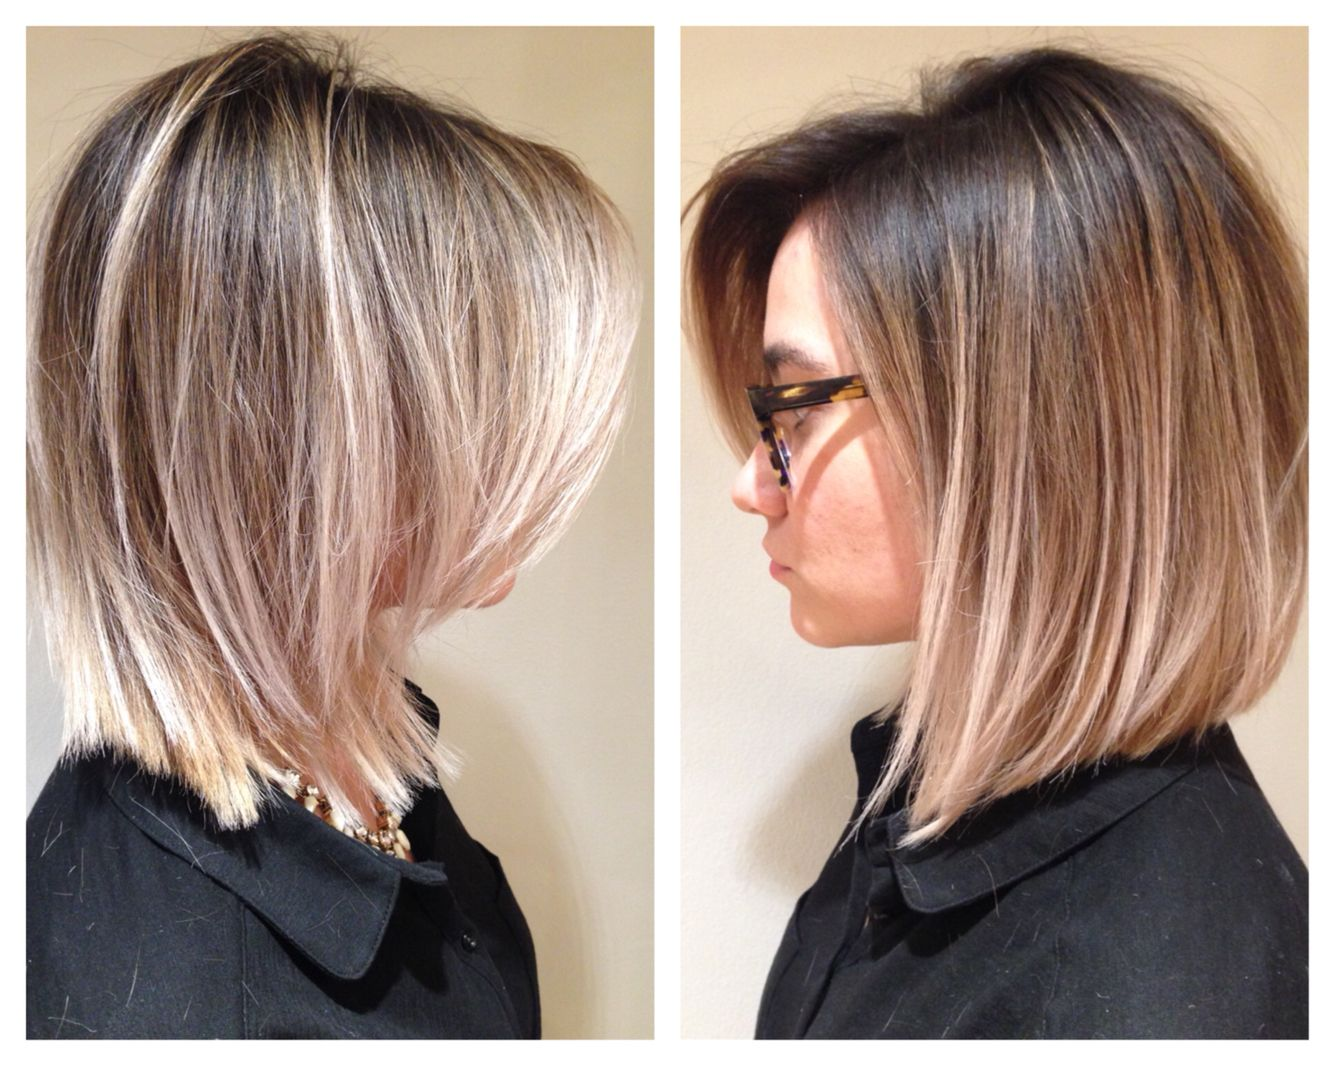 Long Bob Ombre Braun Ombré Hair Balayage Hair Painting Long Bob Blonde By Natalie